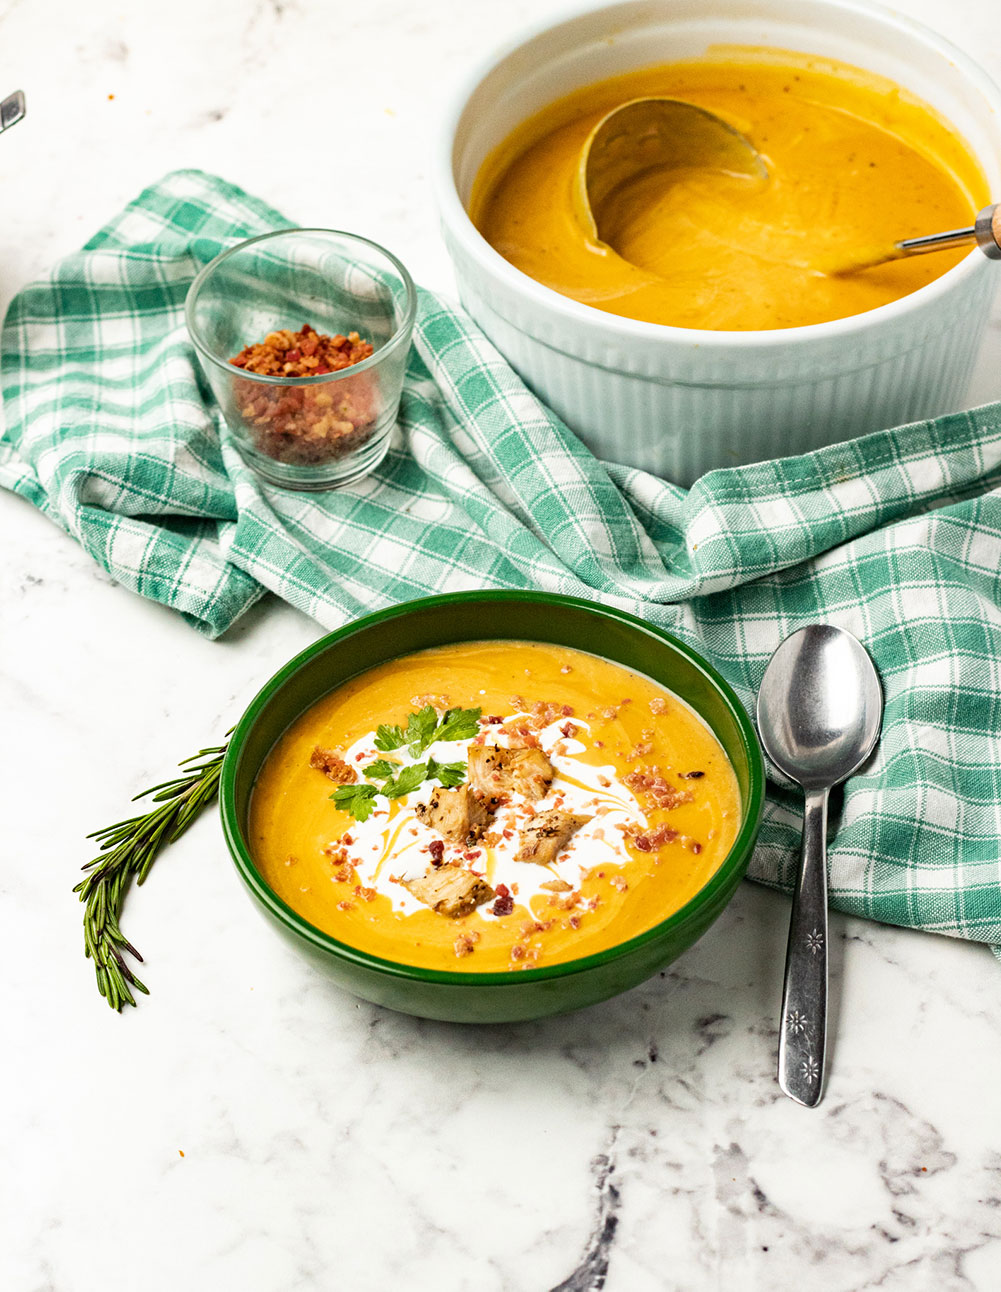 butternut squash soup in a green bowl with cream and bacon on top.